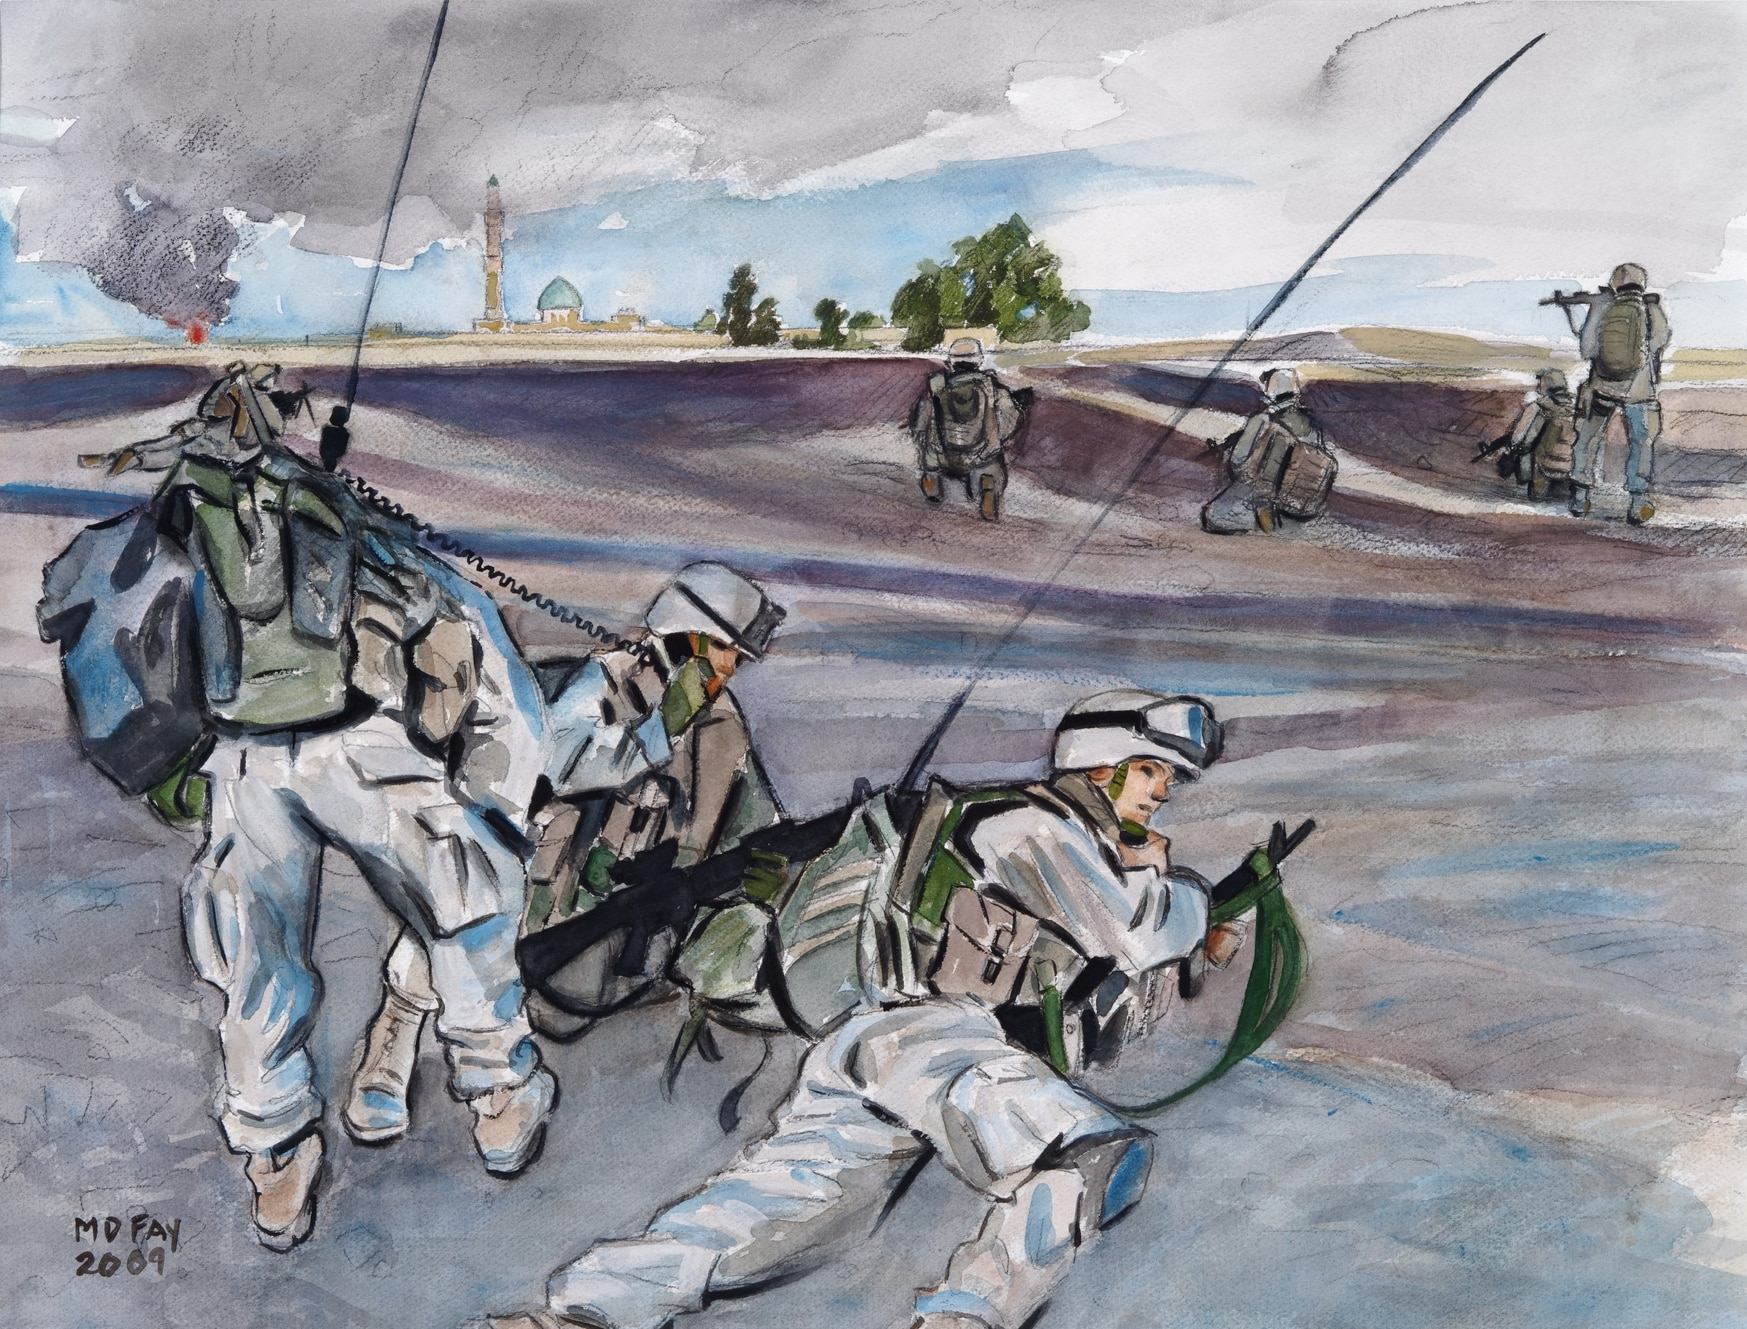 Combat artist and Marine Michael D. Fay was embedded with Fox company 2/1 during its assault on Ubaydi, Iraq. (Art Collection National Museum of the Marine Corps)